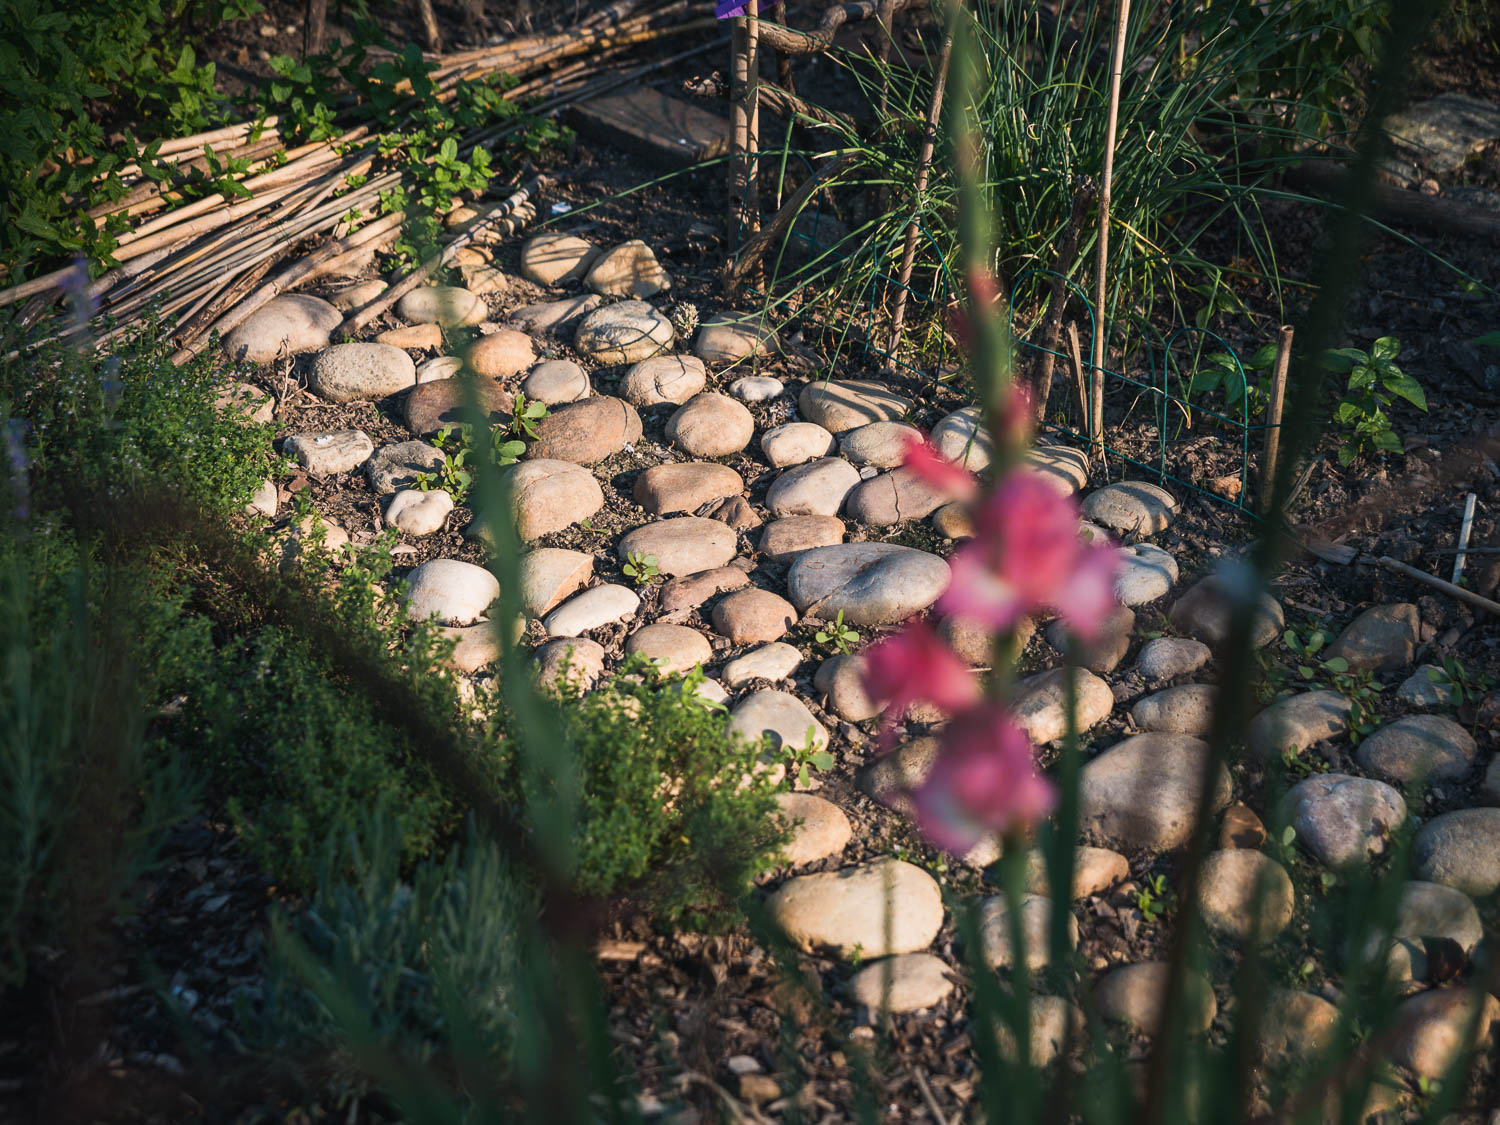 A stepping-stone path that allows farmers to reach plants in the center of their plots.